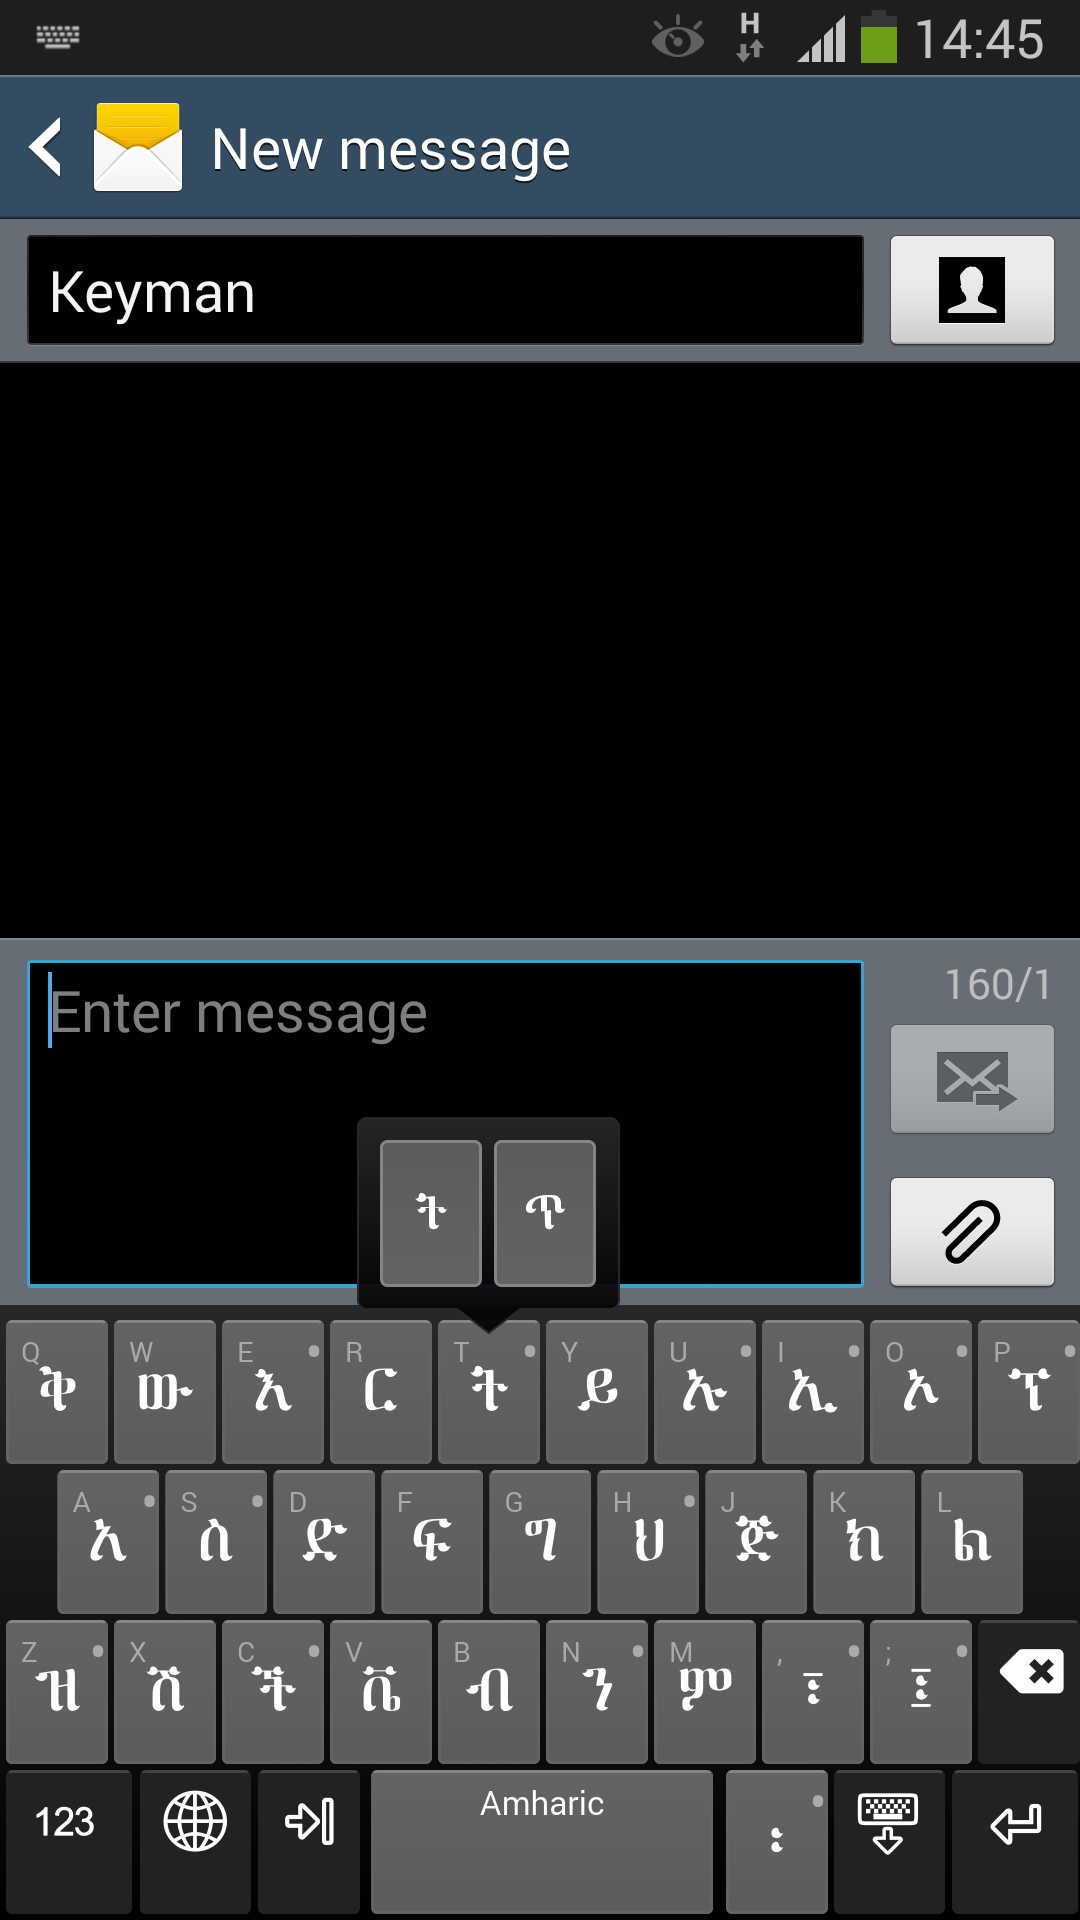 Amharic Keyboard Layout Updated For Touch Devices  U2013 Keyman